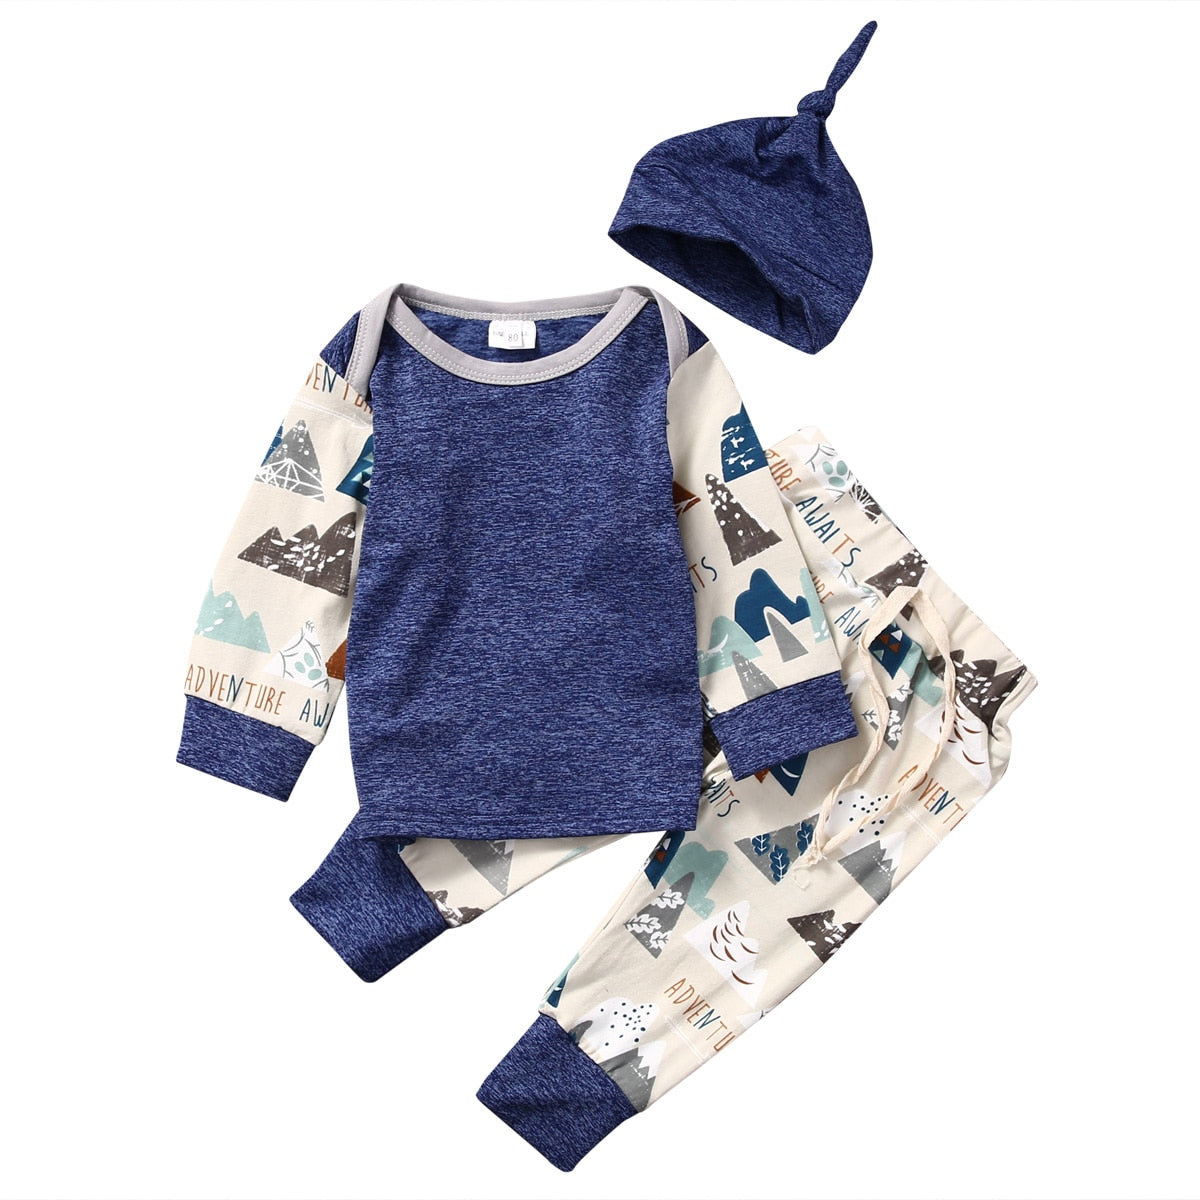 3pcs/Set baby Boys Clothing Set Cute Newborn Baby Boys Long Sleeve T-shirt Top+Long Pants Hat Outfit Clothes Set-eosegal